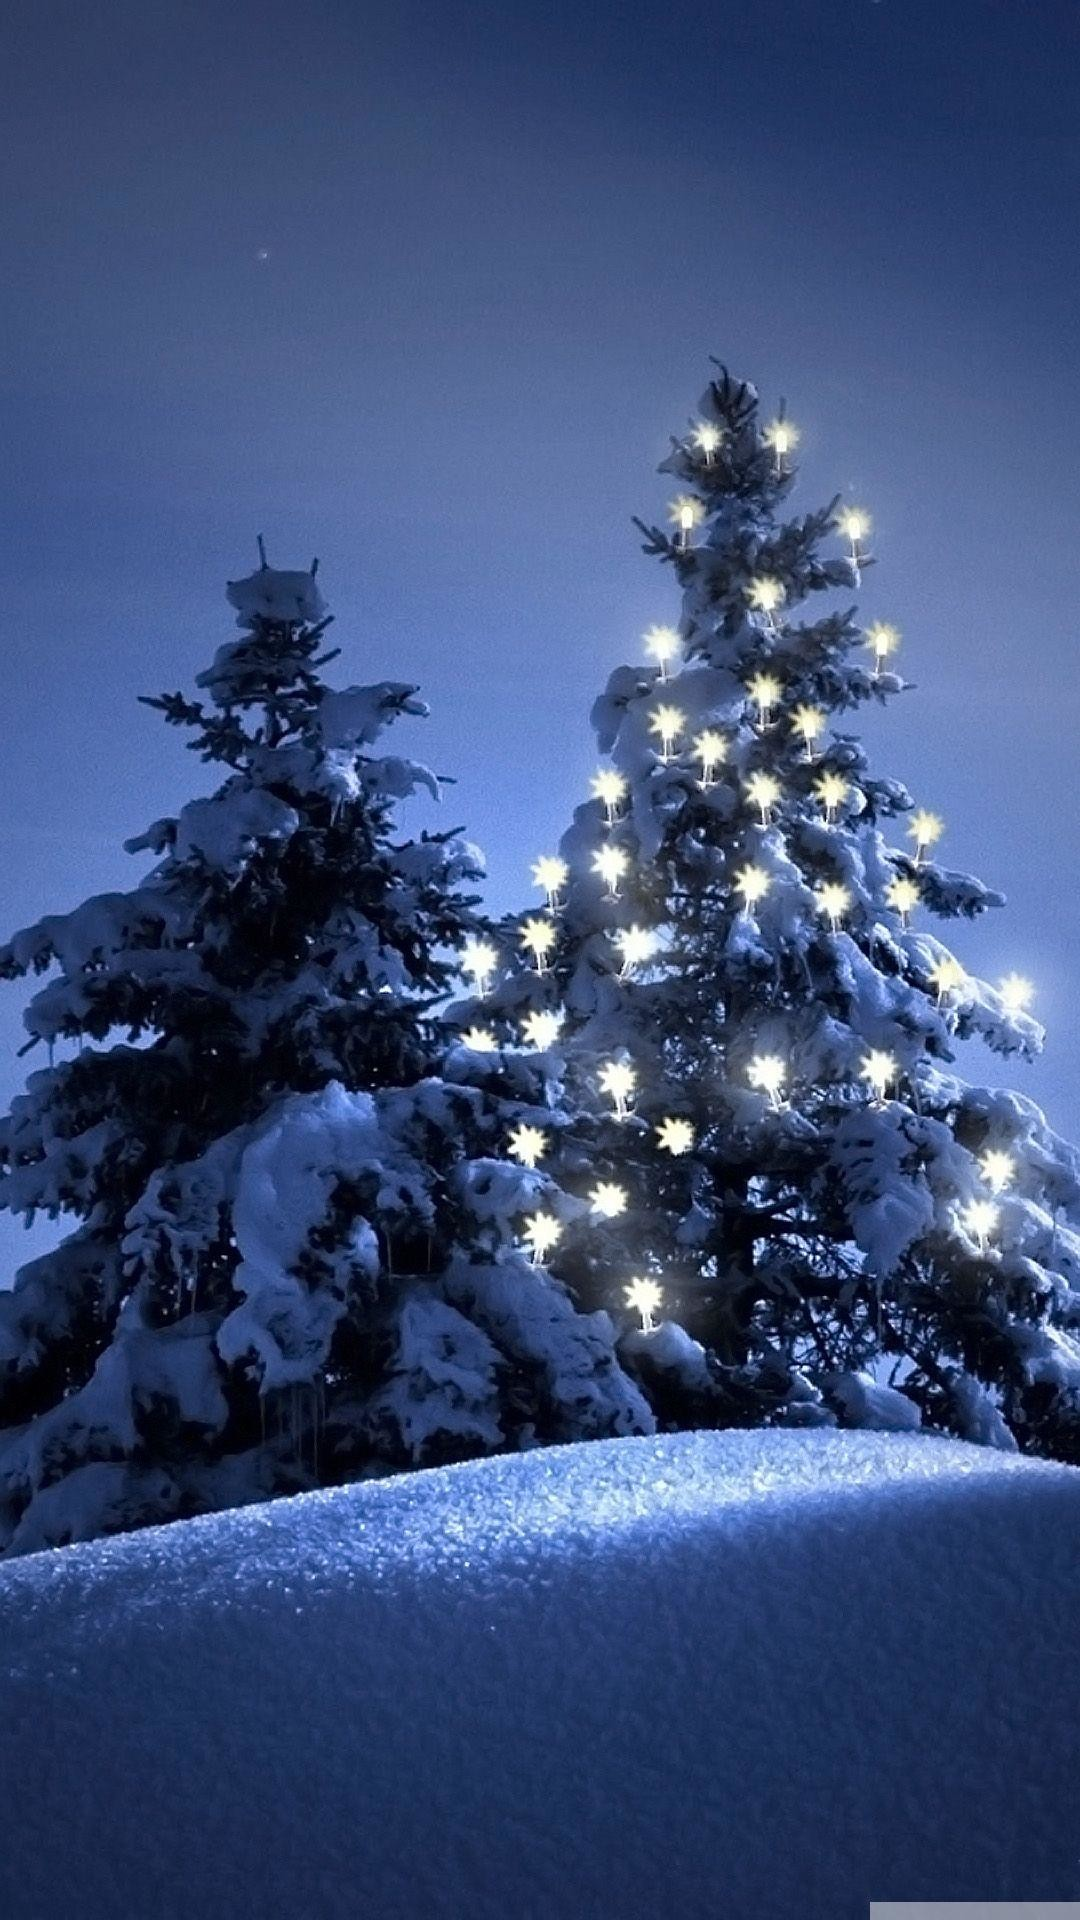 We renew christmas wallpaper for iphone 6 plus slides to make you always  find the best here , these images were posted 12-17-2014, 03:20 AM and may  be …